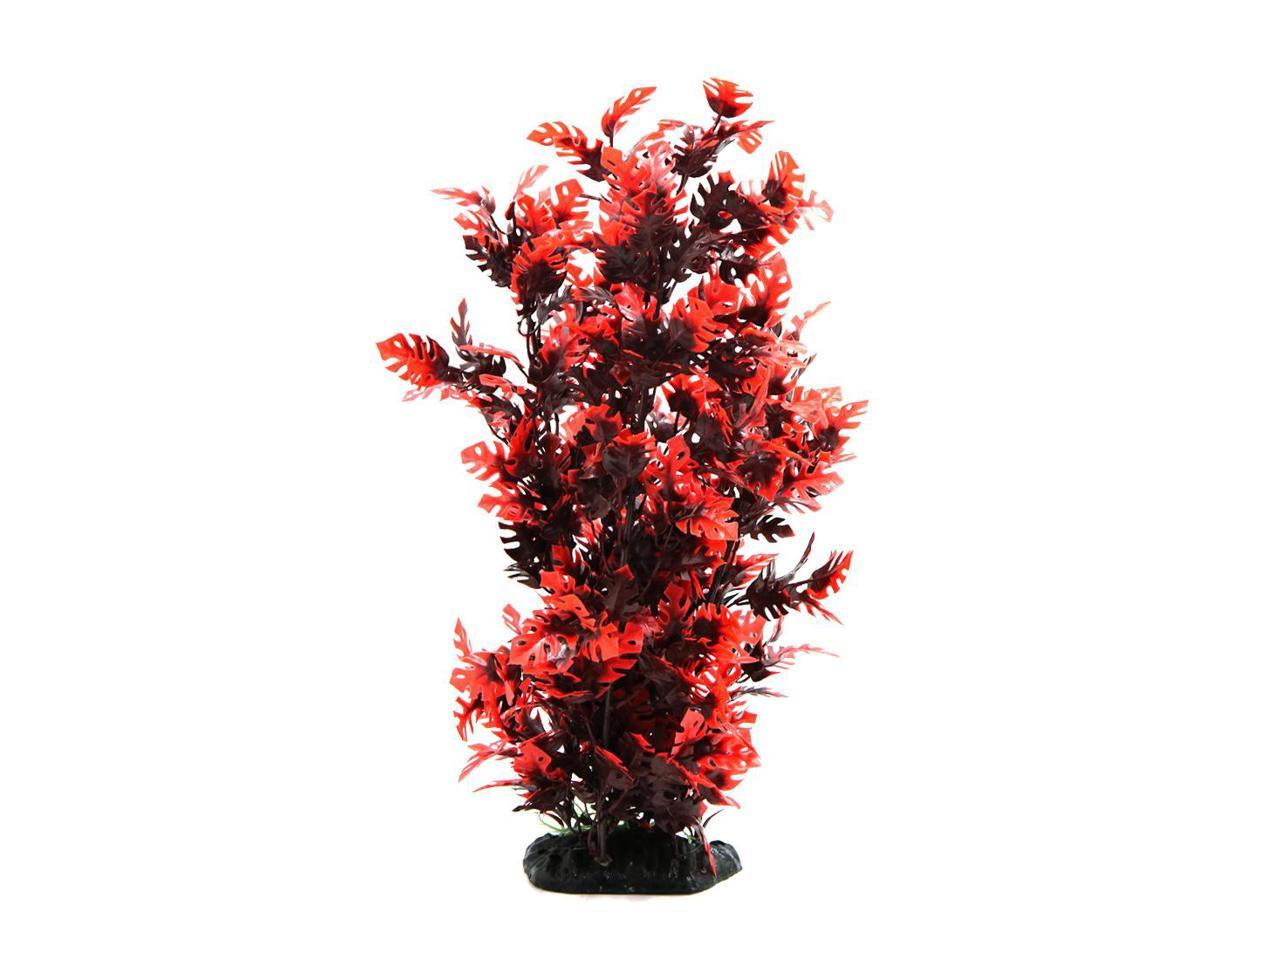 15 3 Inch Red Plastic Decorative Plant Aquarium Terrarium Decor Reptiles Habitat Ornament Home Decoration Newegg Com